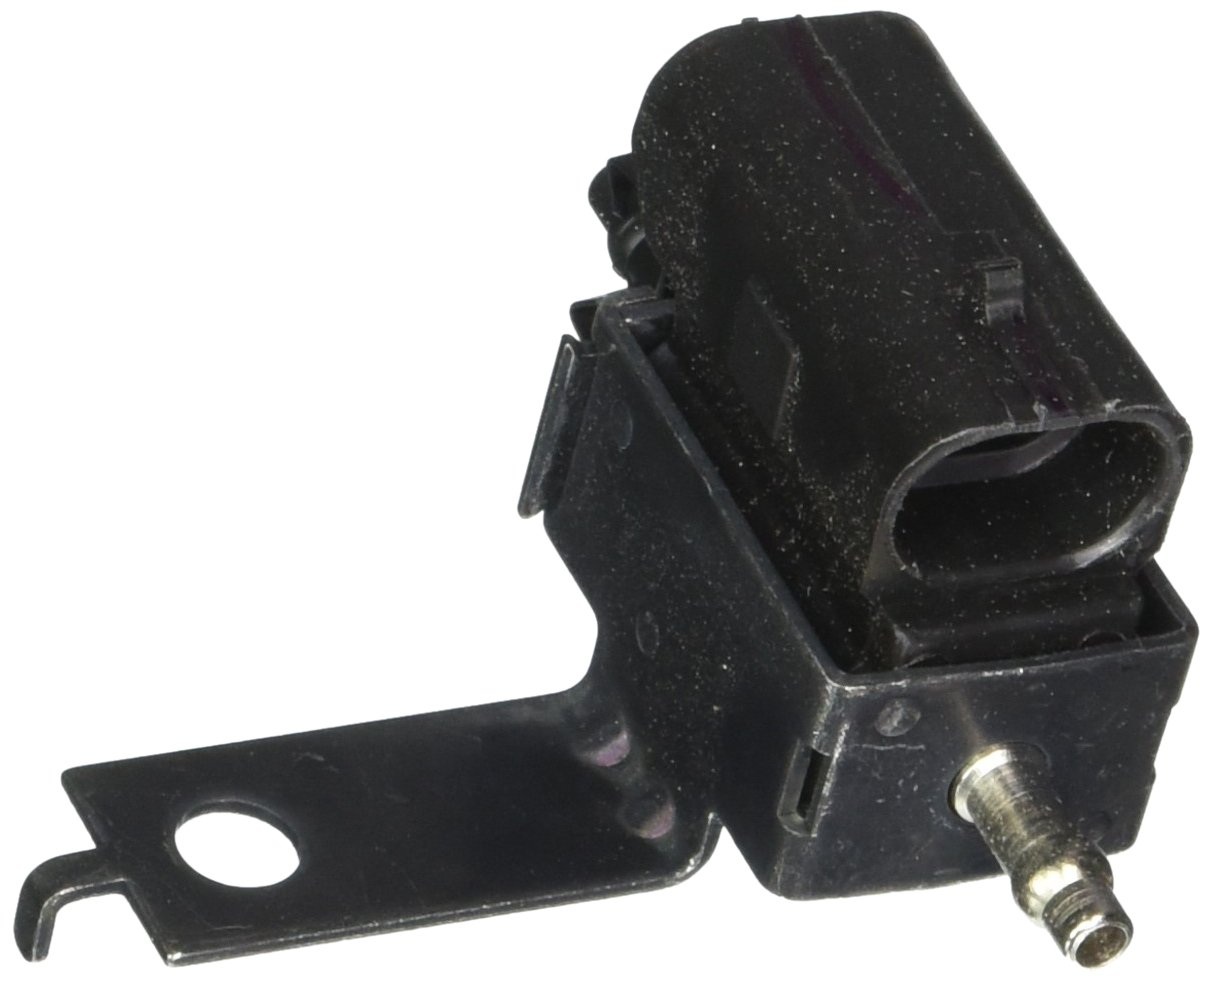 Standard Motor Products U44001 Supercharger Bypass Valve by Standard Motor Products